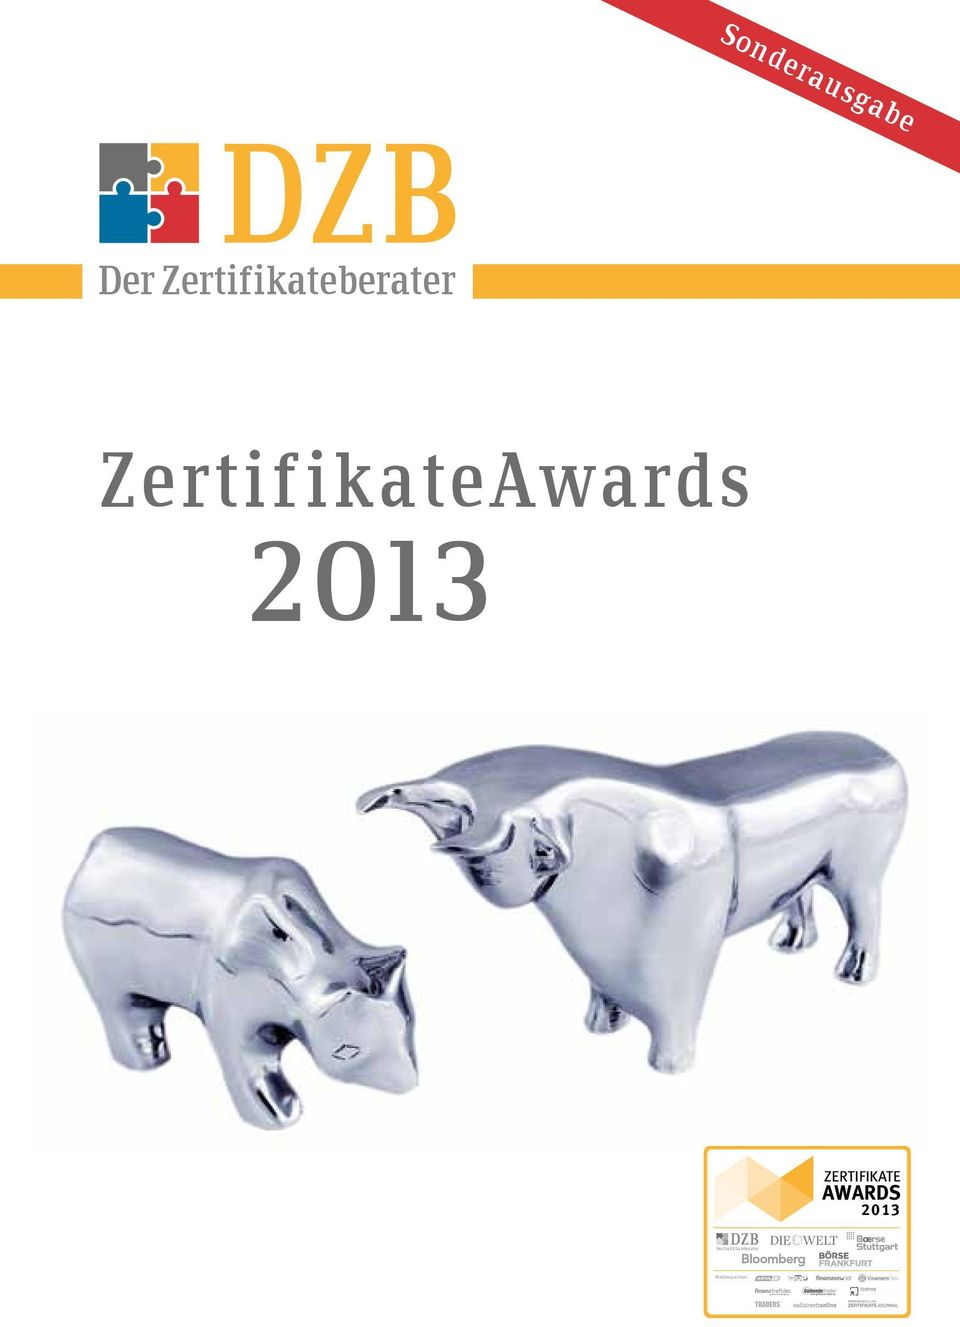 ZertifikateAwards 2013